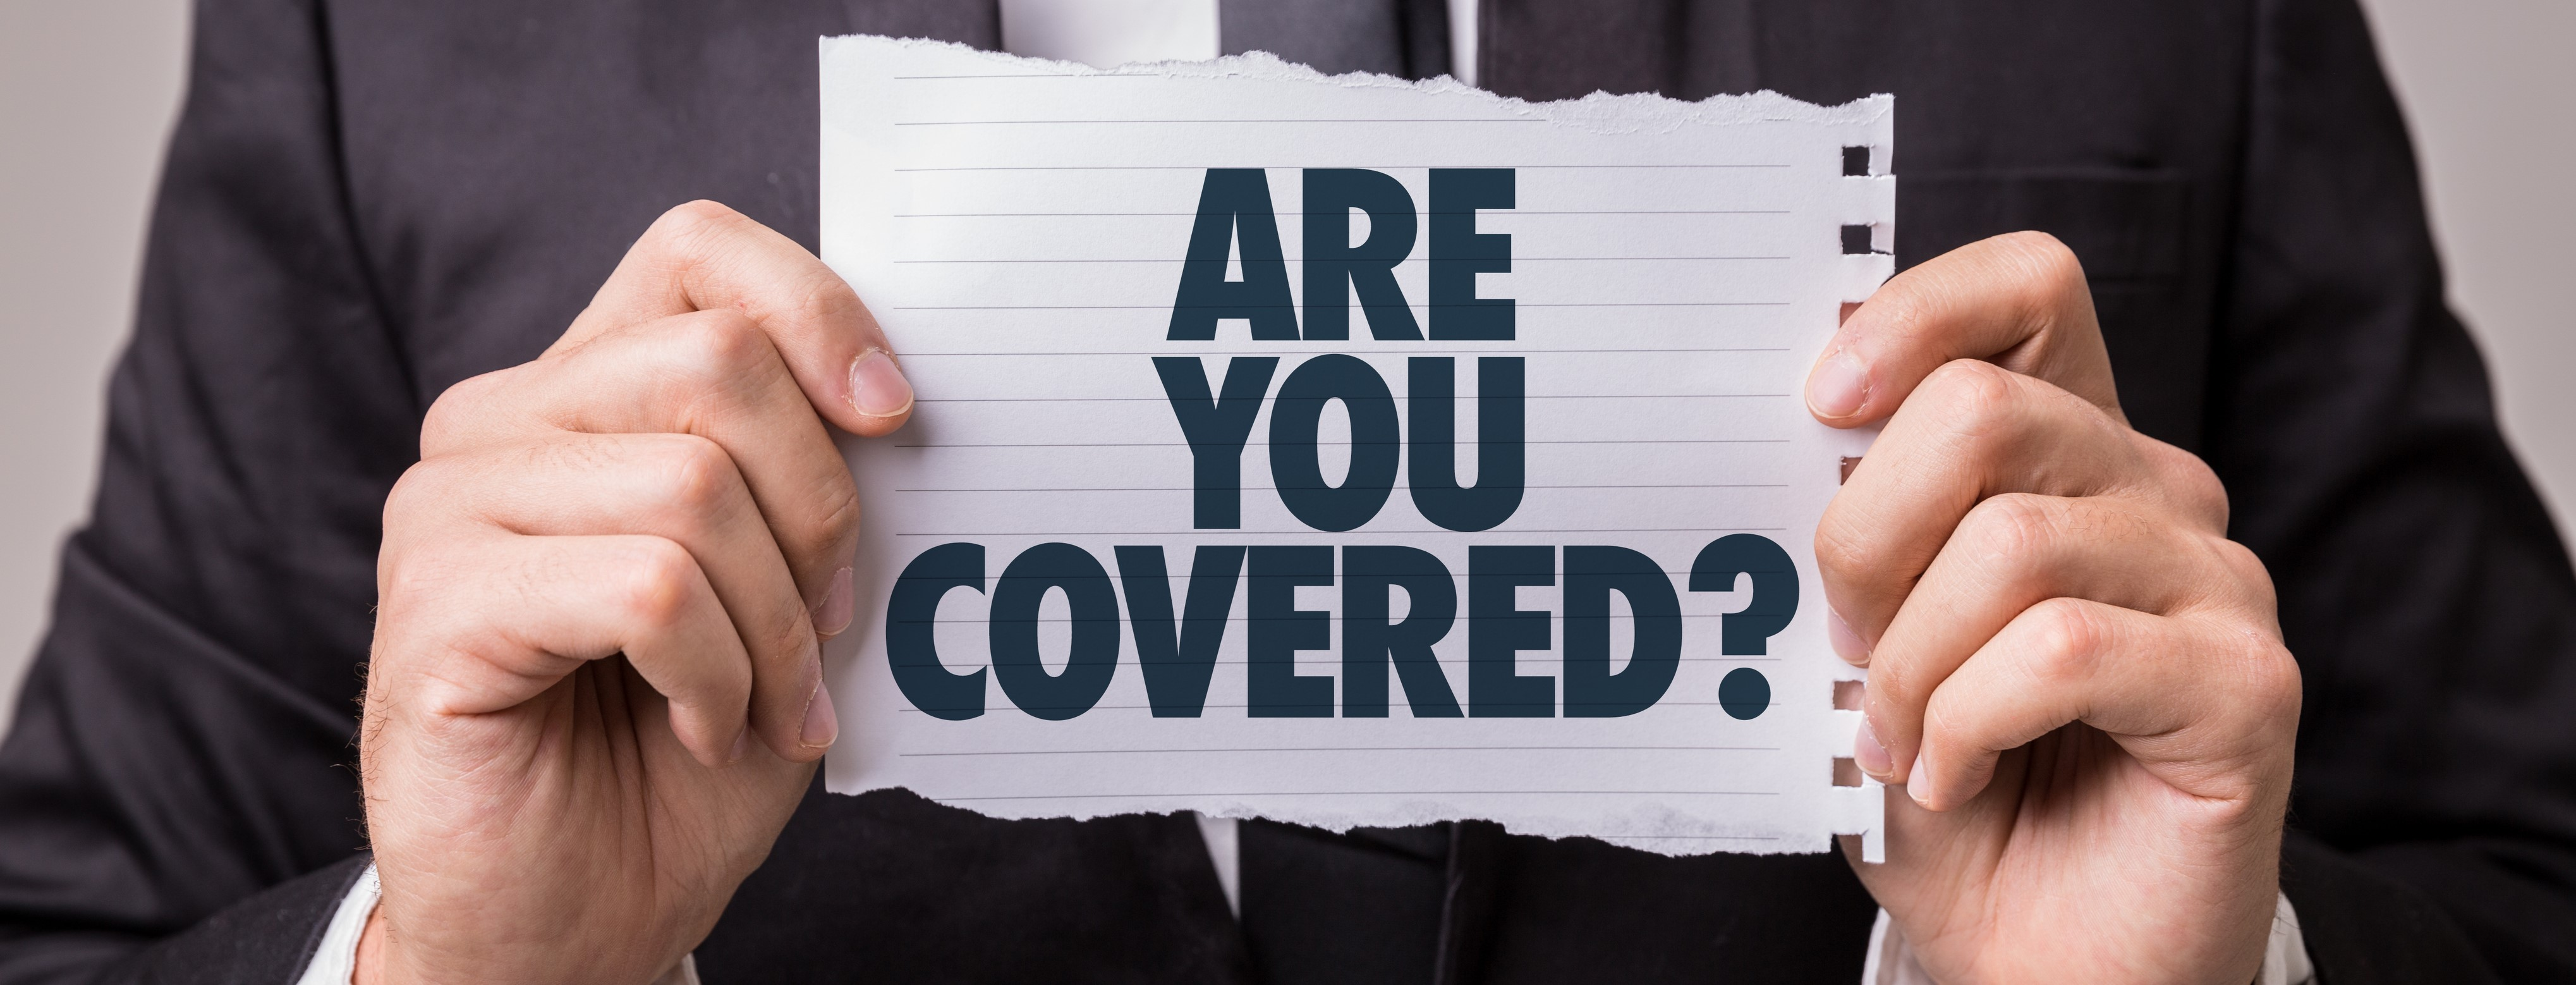 workers' compensation owners